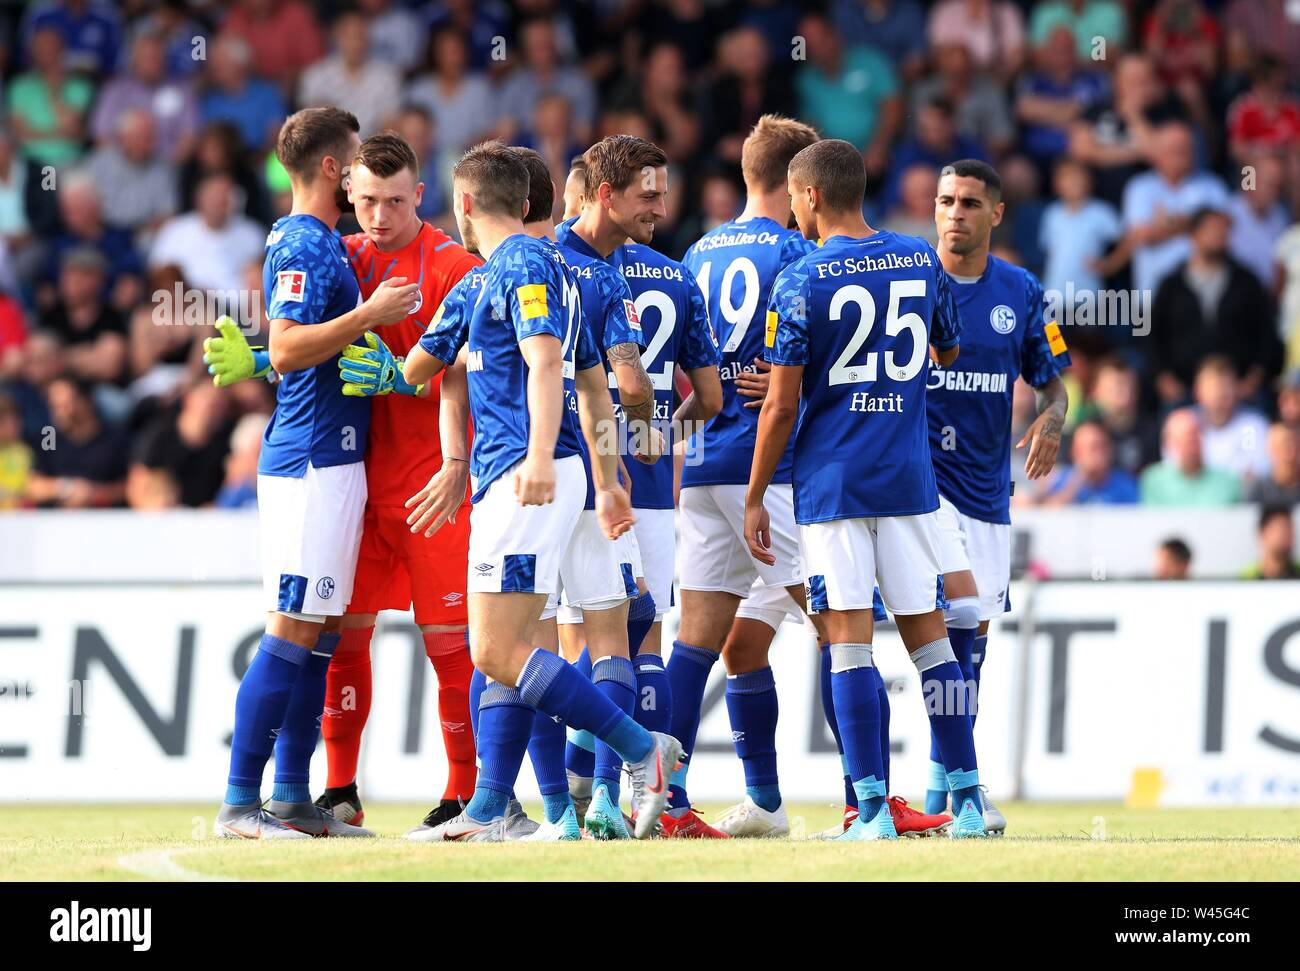 Lotte, Deutschland. 19th July, 2019. firo: 19.07.2019, football, 1.Bundesliga, season 2019/2020, friendly match, FC Schalke 04 - Norwich City Team, team Schalke to SCHUBERT | usage worldwide Credit: dpa/Alamy Live News - Stock Image